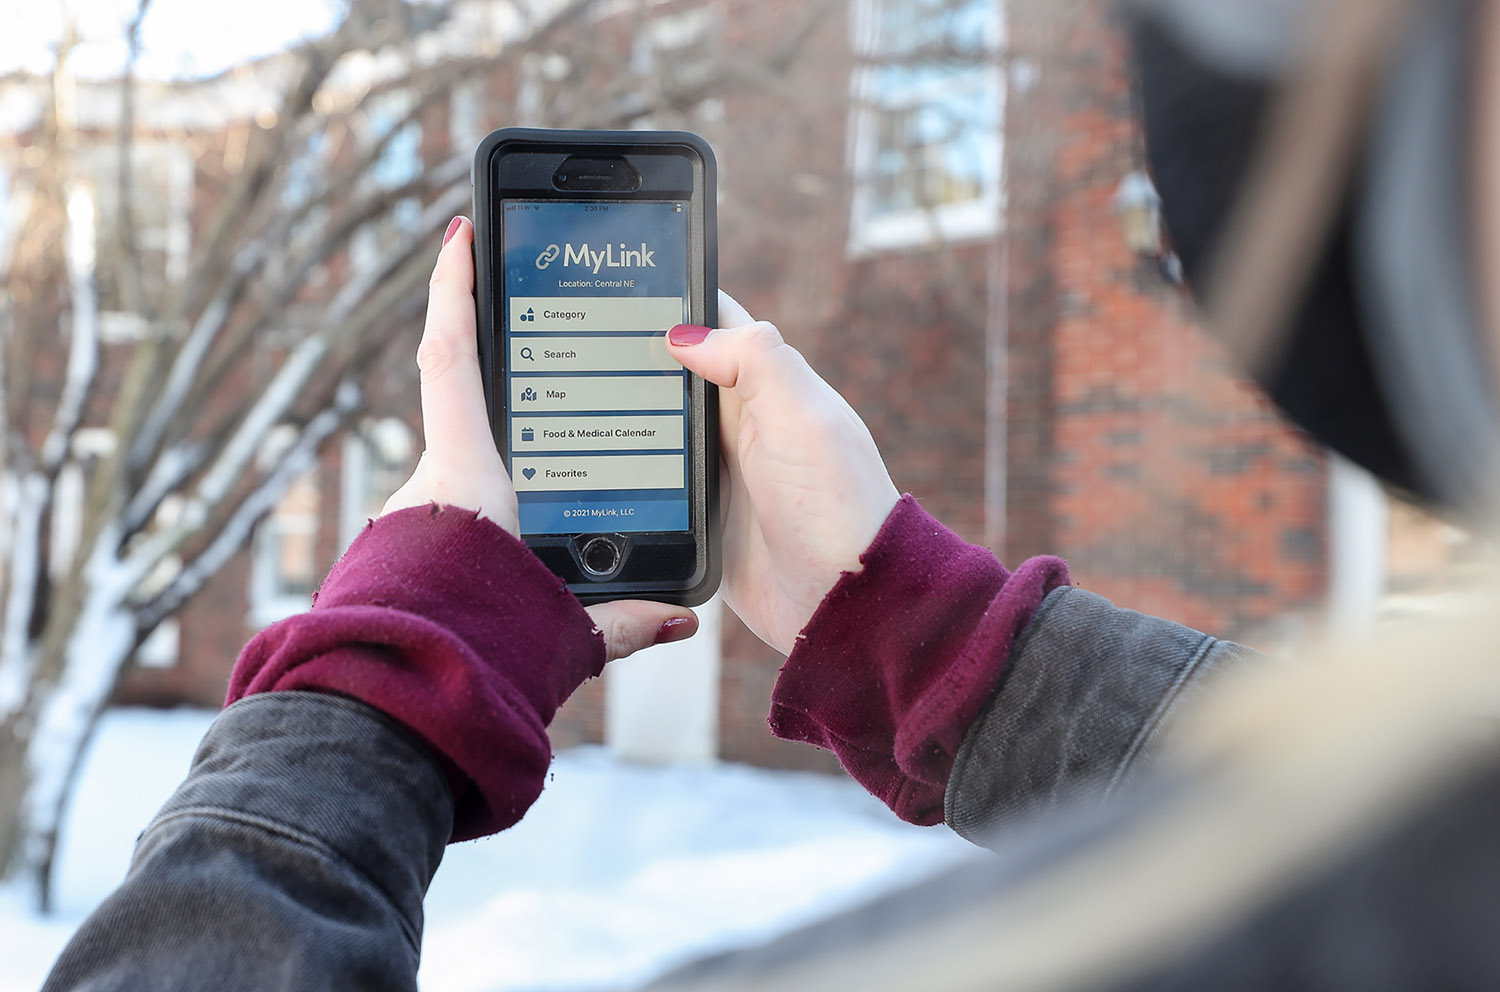 The MyLink app allows users to access information about a variety of services offered by nonprofit organizations and government agencies. (Photo by Erika Pritchard, UNK Communications)